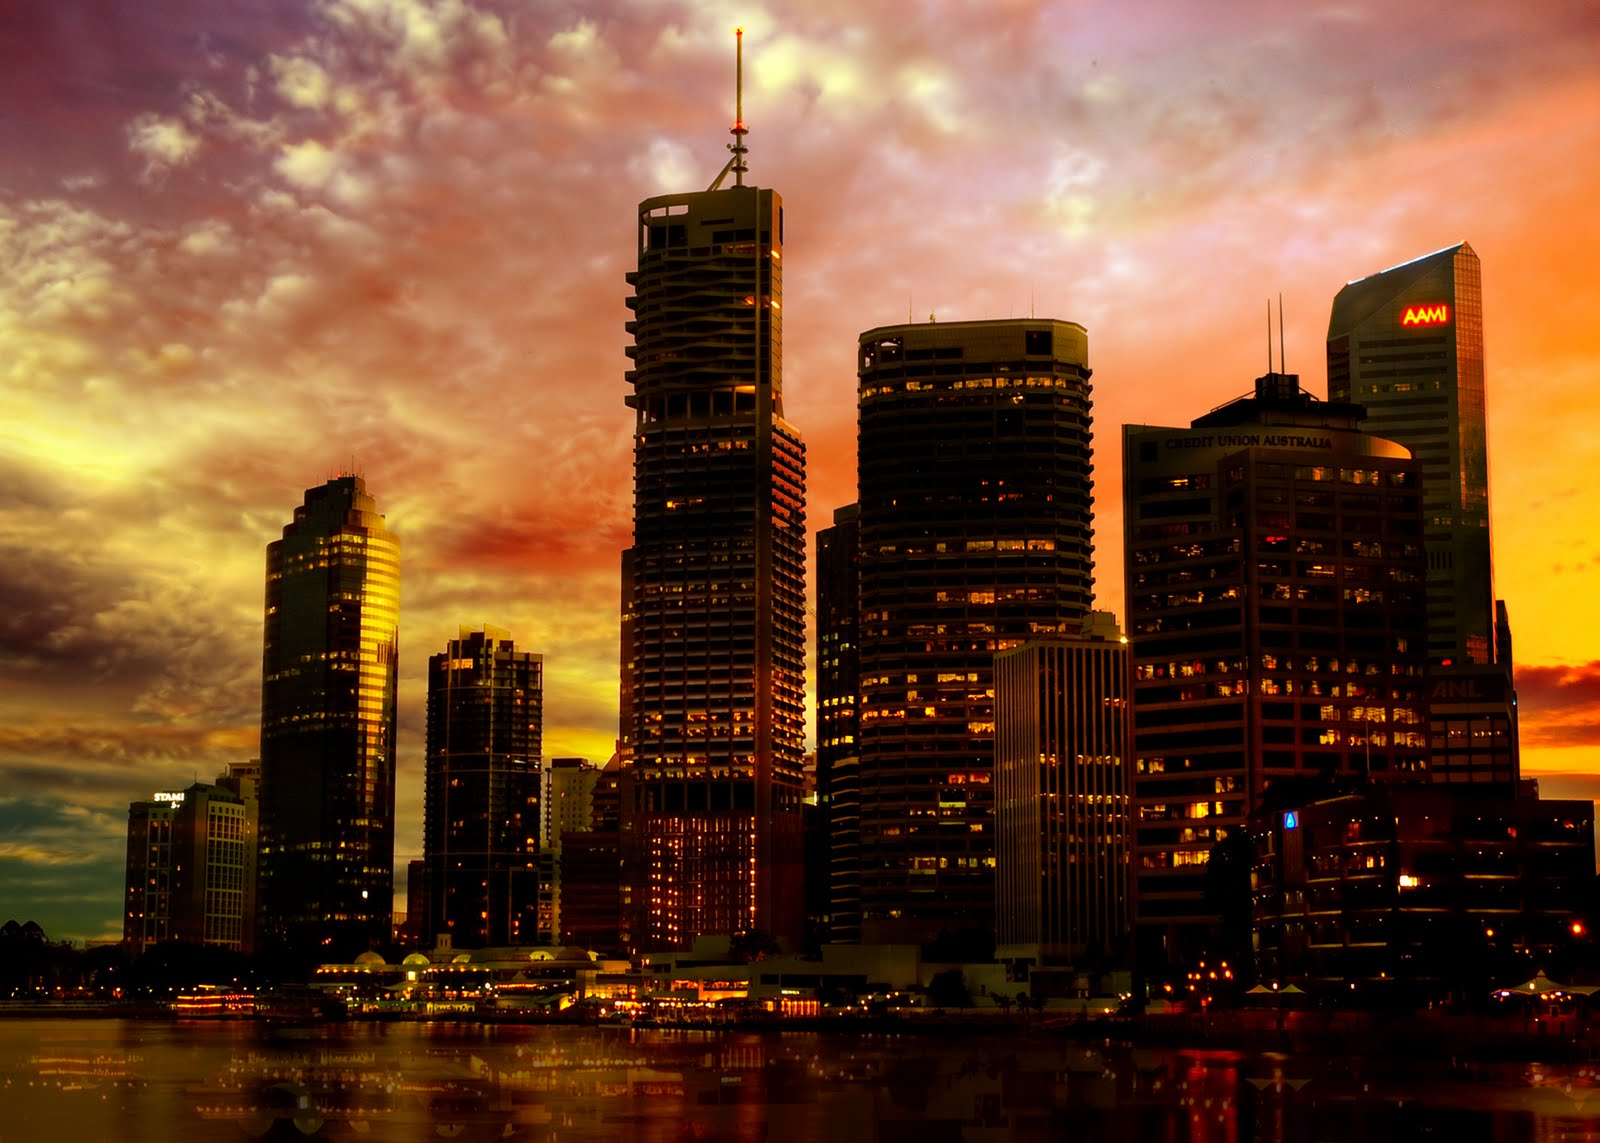 Amazing City Sunset Naturally Backgrounds Wallpapers 1600x1143